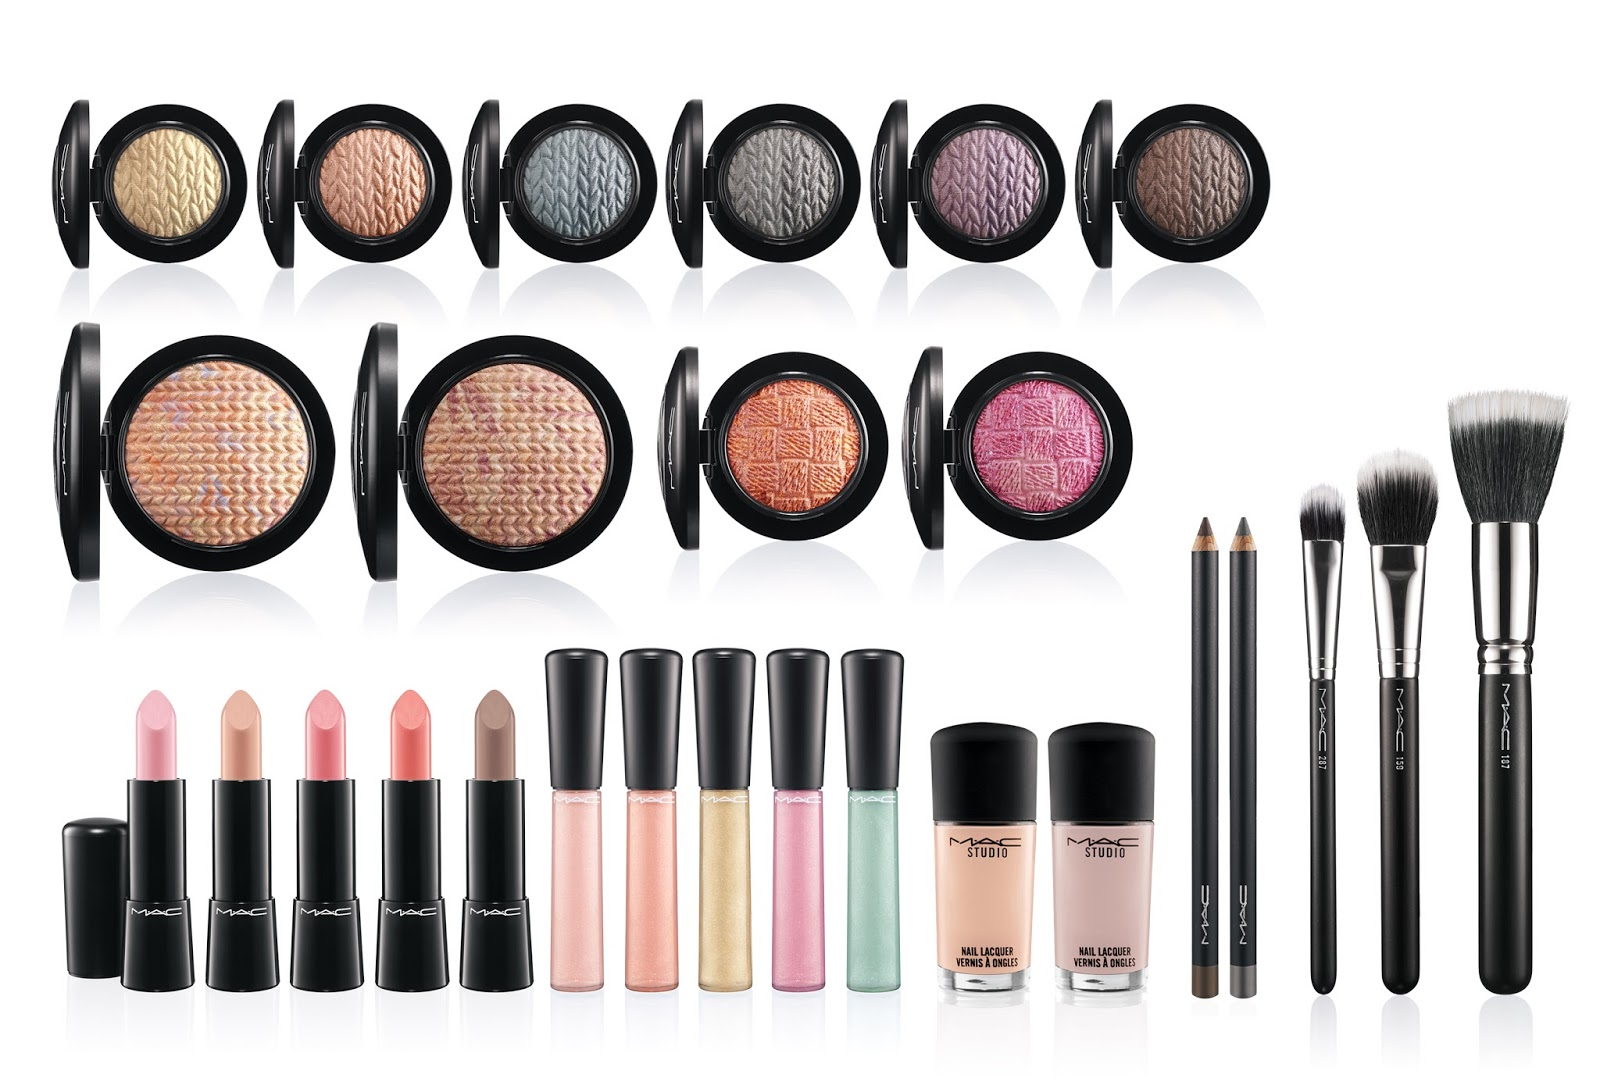 Press Release: MAC Lightness of Being Collection - January 6th, 2015